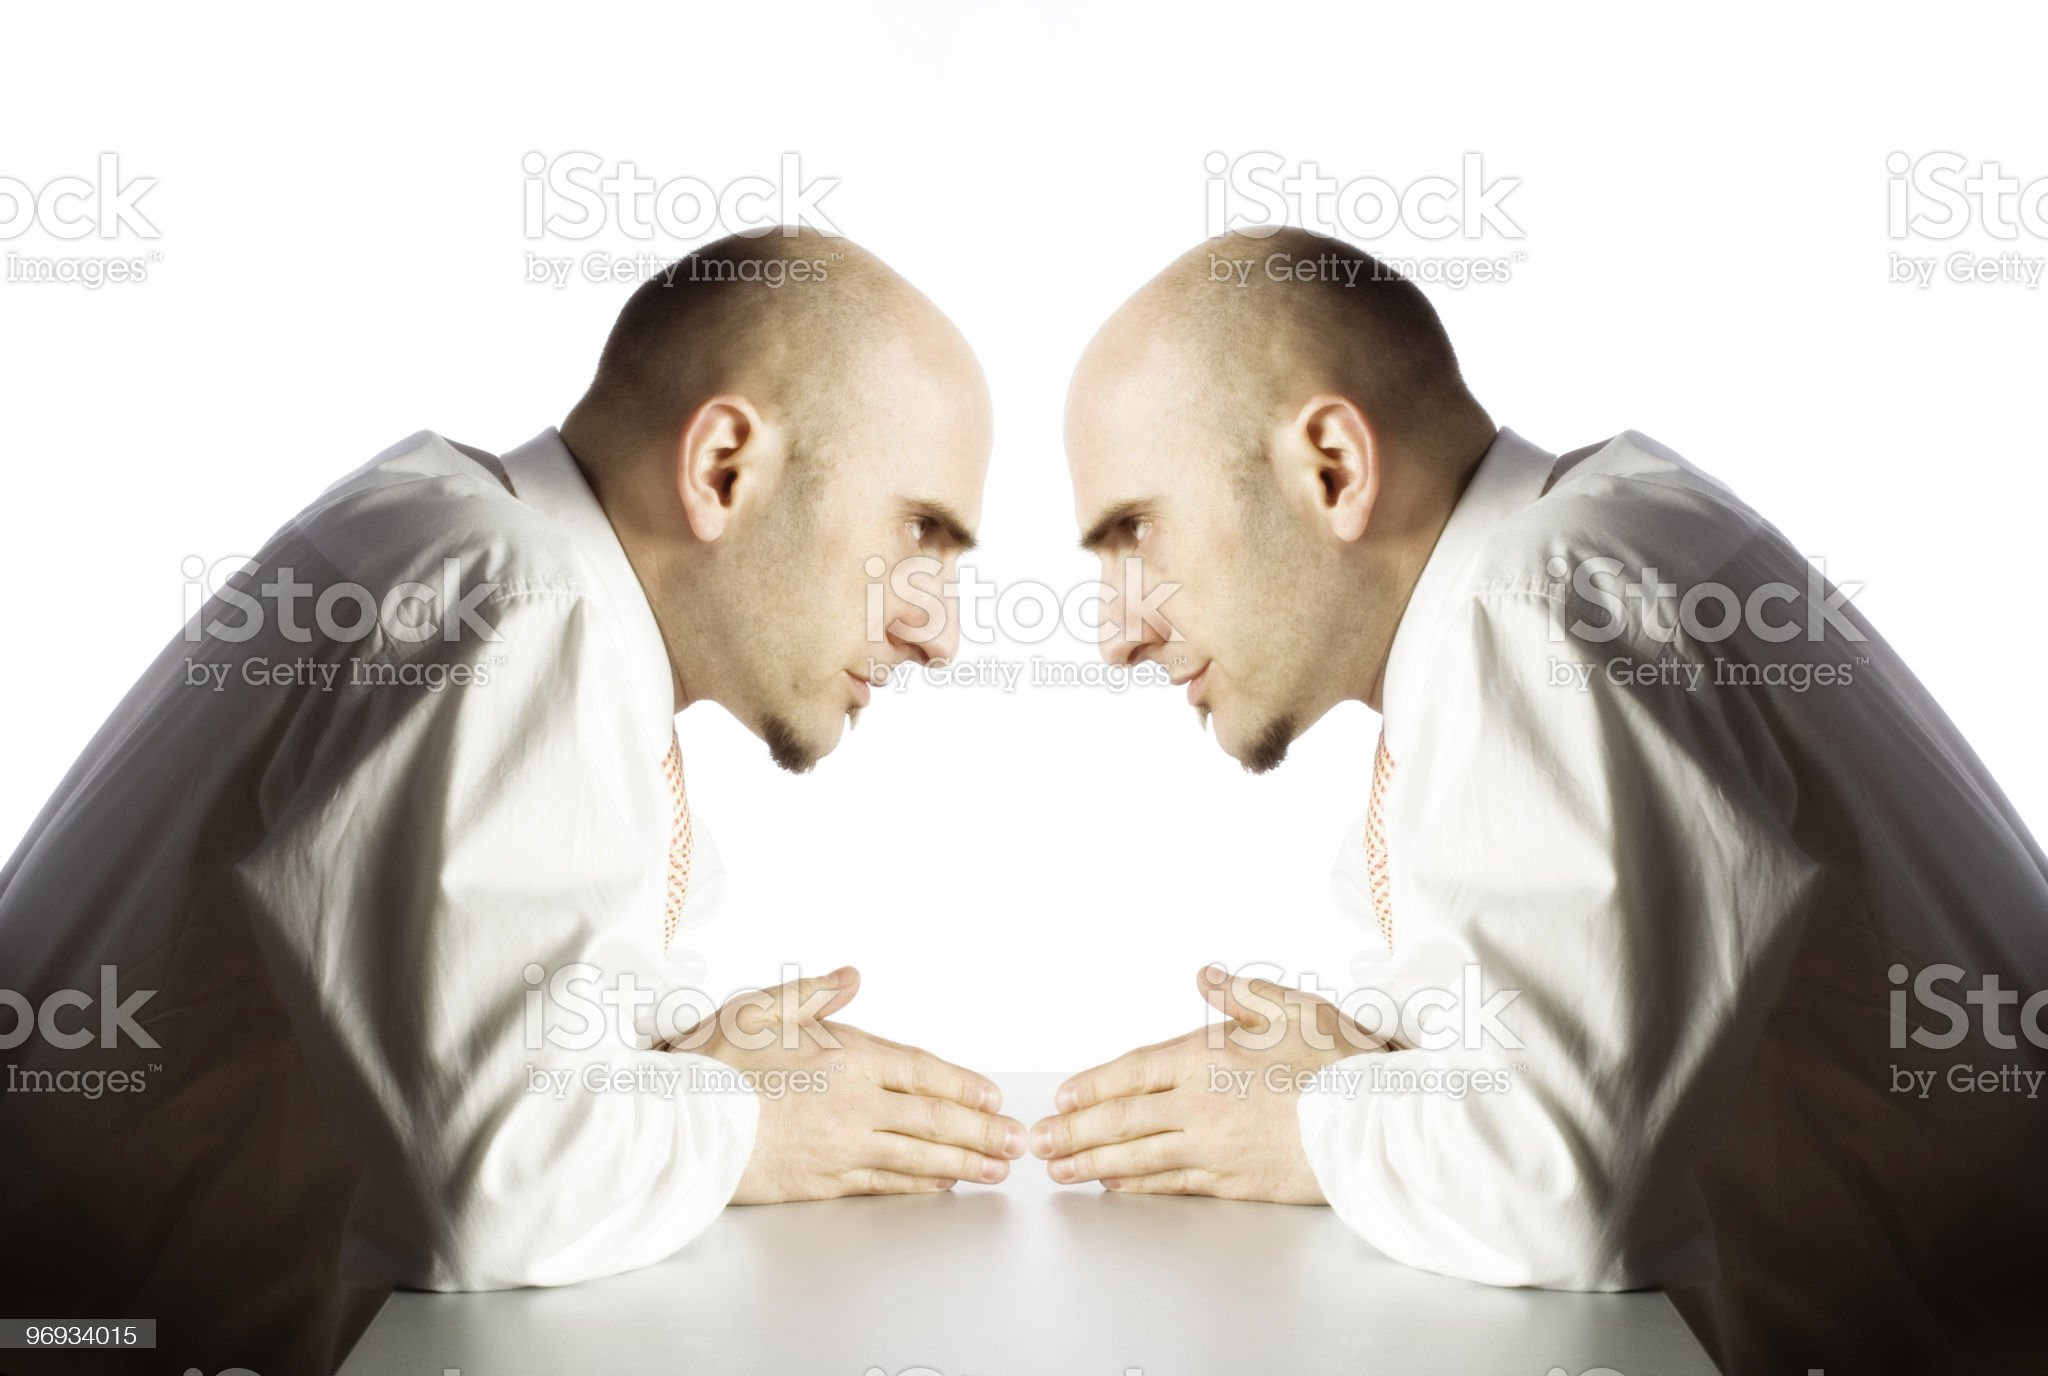 Man argues with himself royalty-free stock photo